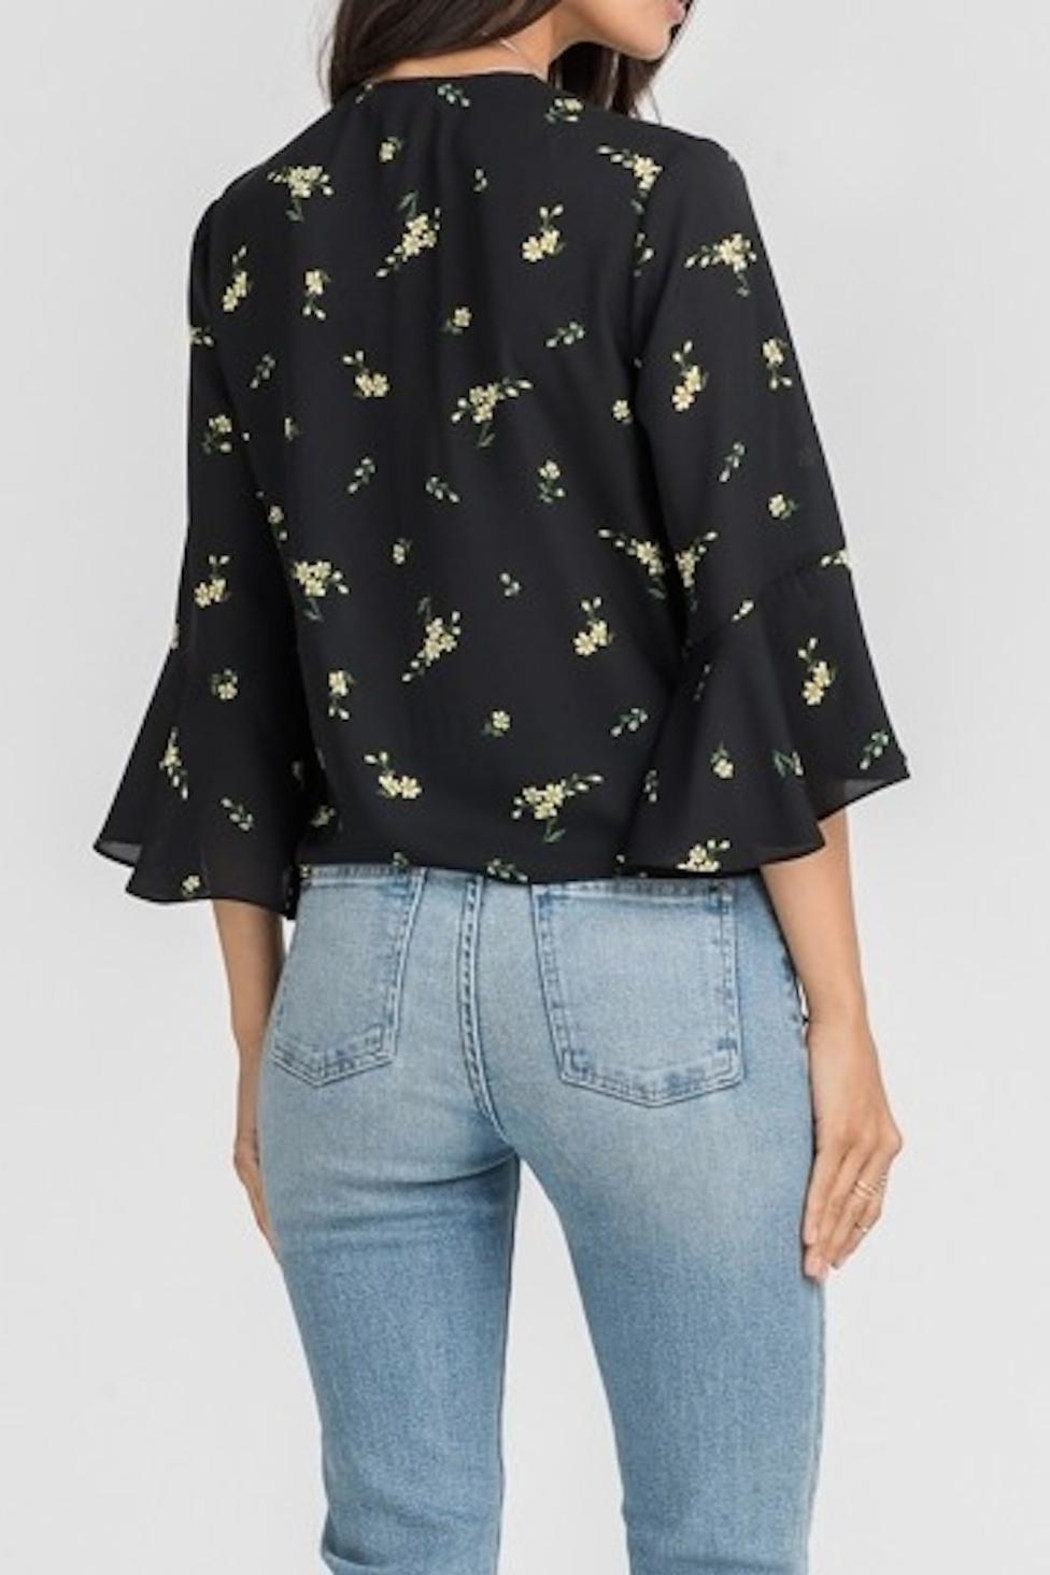 Lush Clothing  Black Floral Blouse - Side Cropped Image